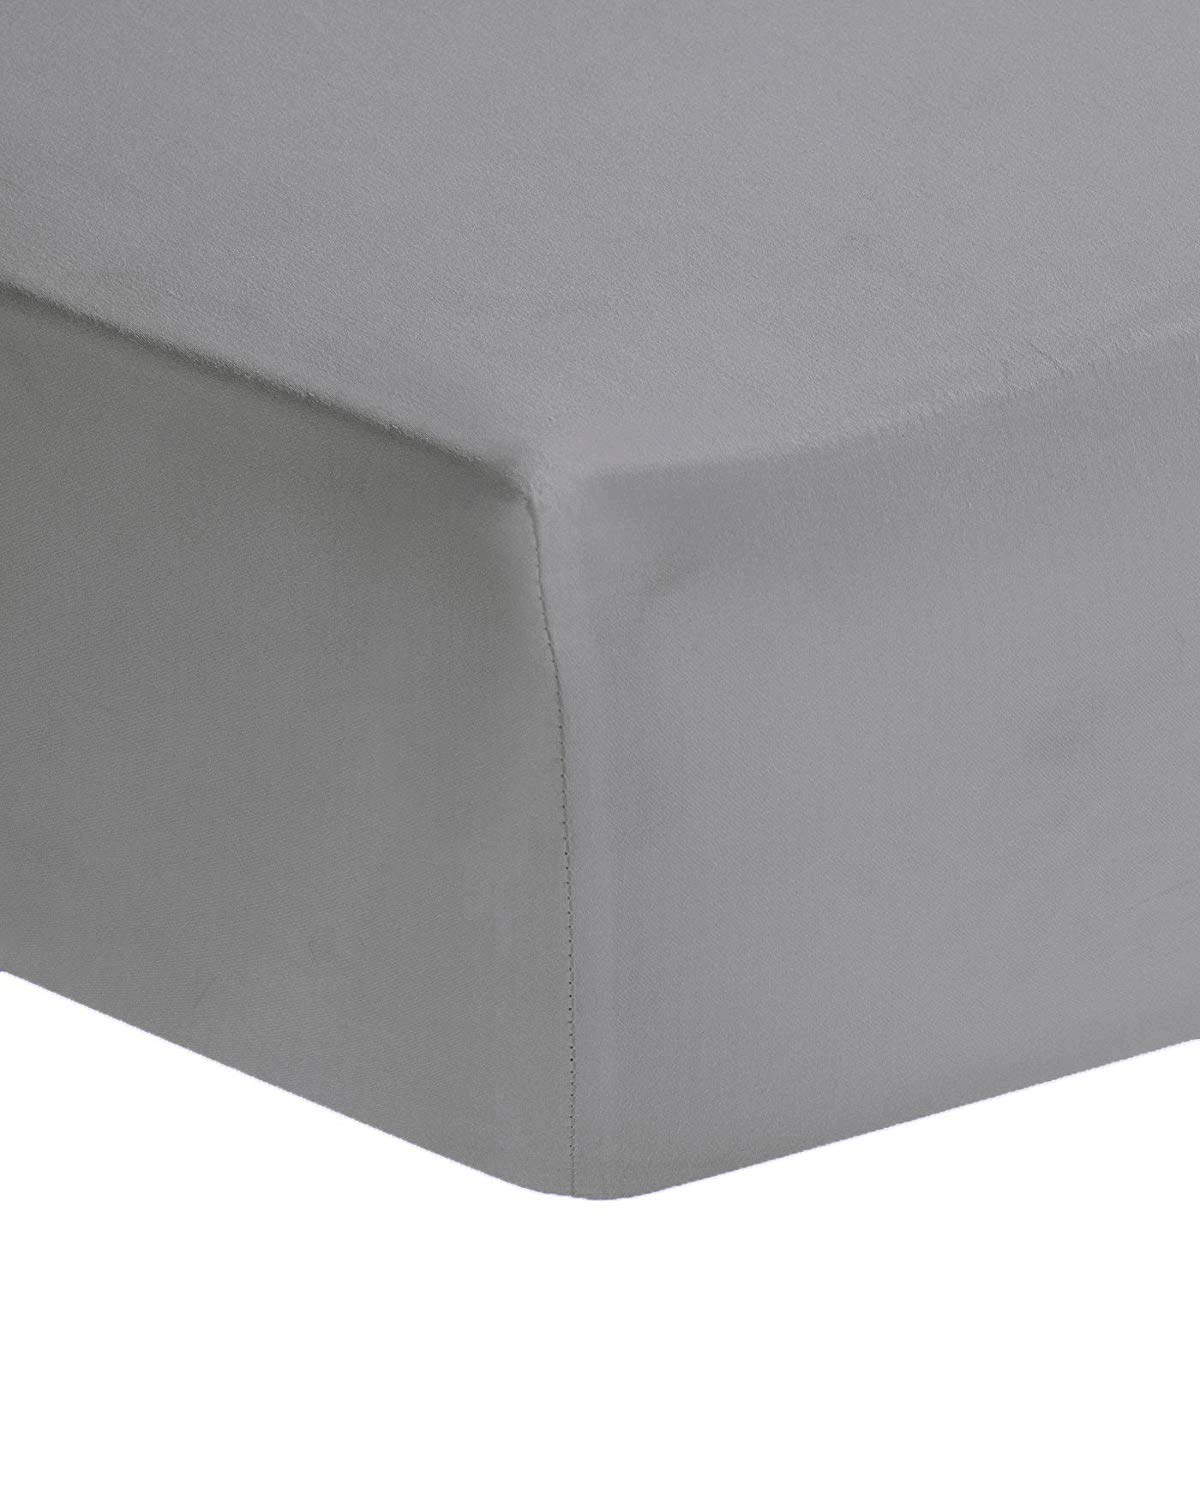 AmigoZone Plain Non Iron Percale Polycotton 4FT Small Double Fitted Sheet (White, 4FT Small Double) Larra Limited